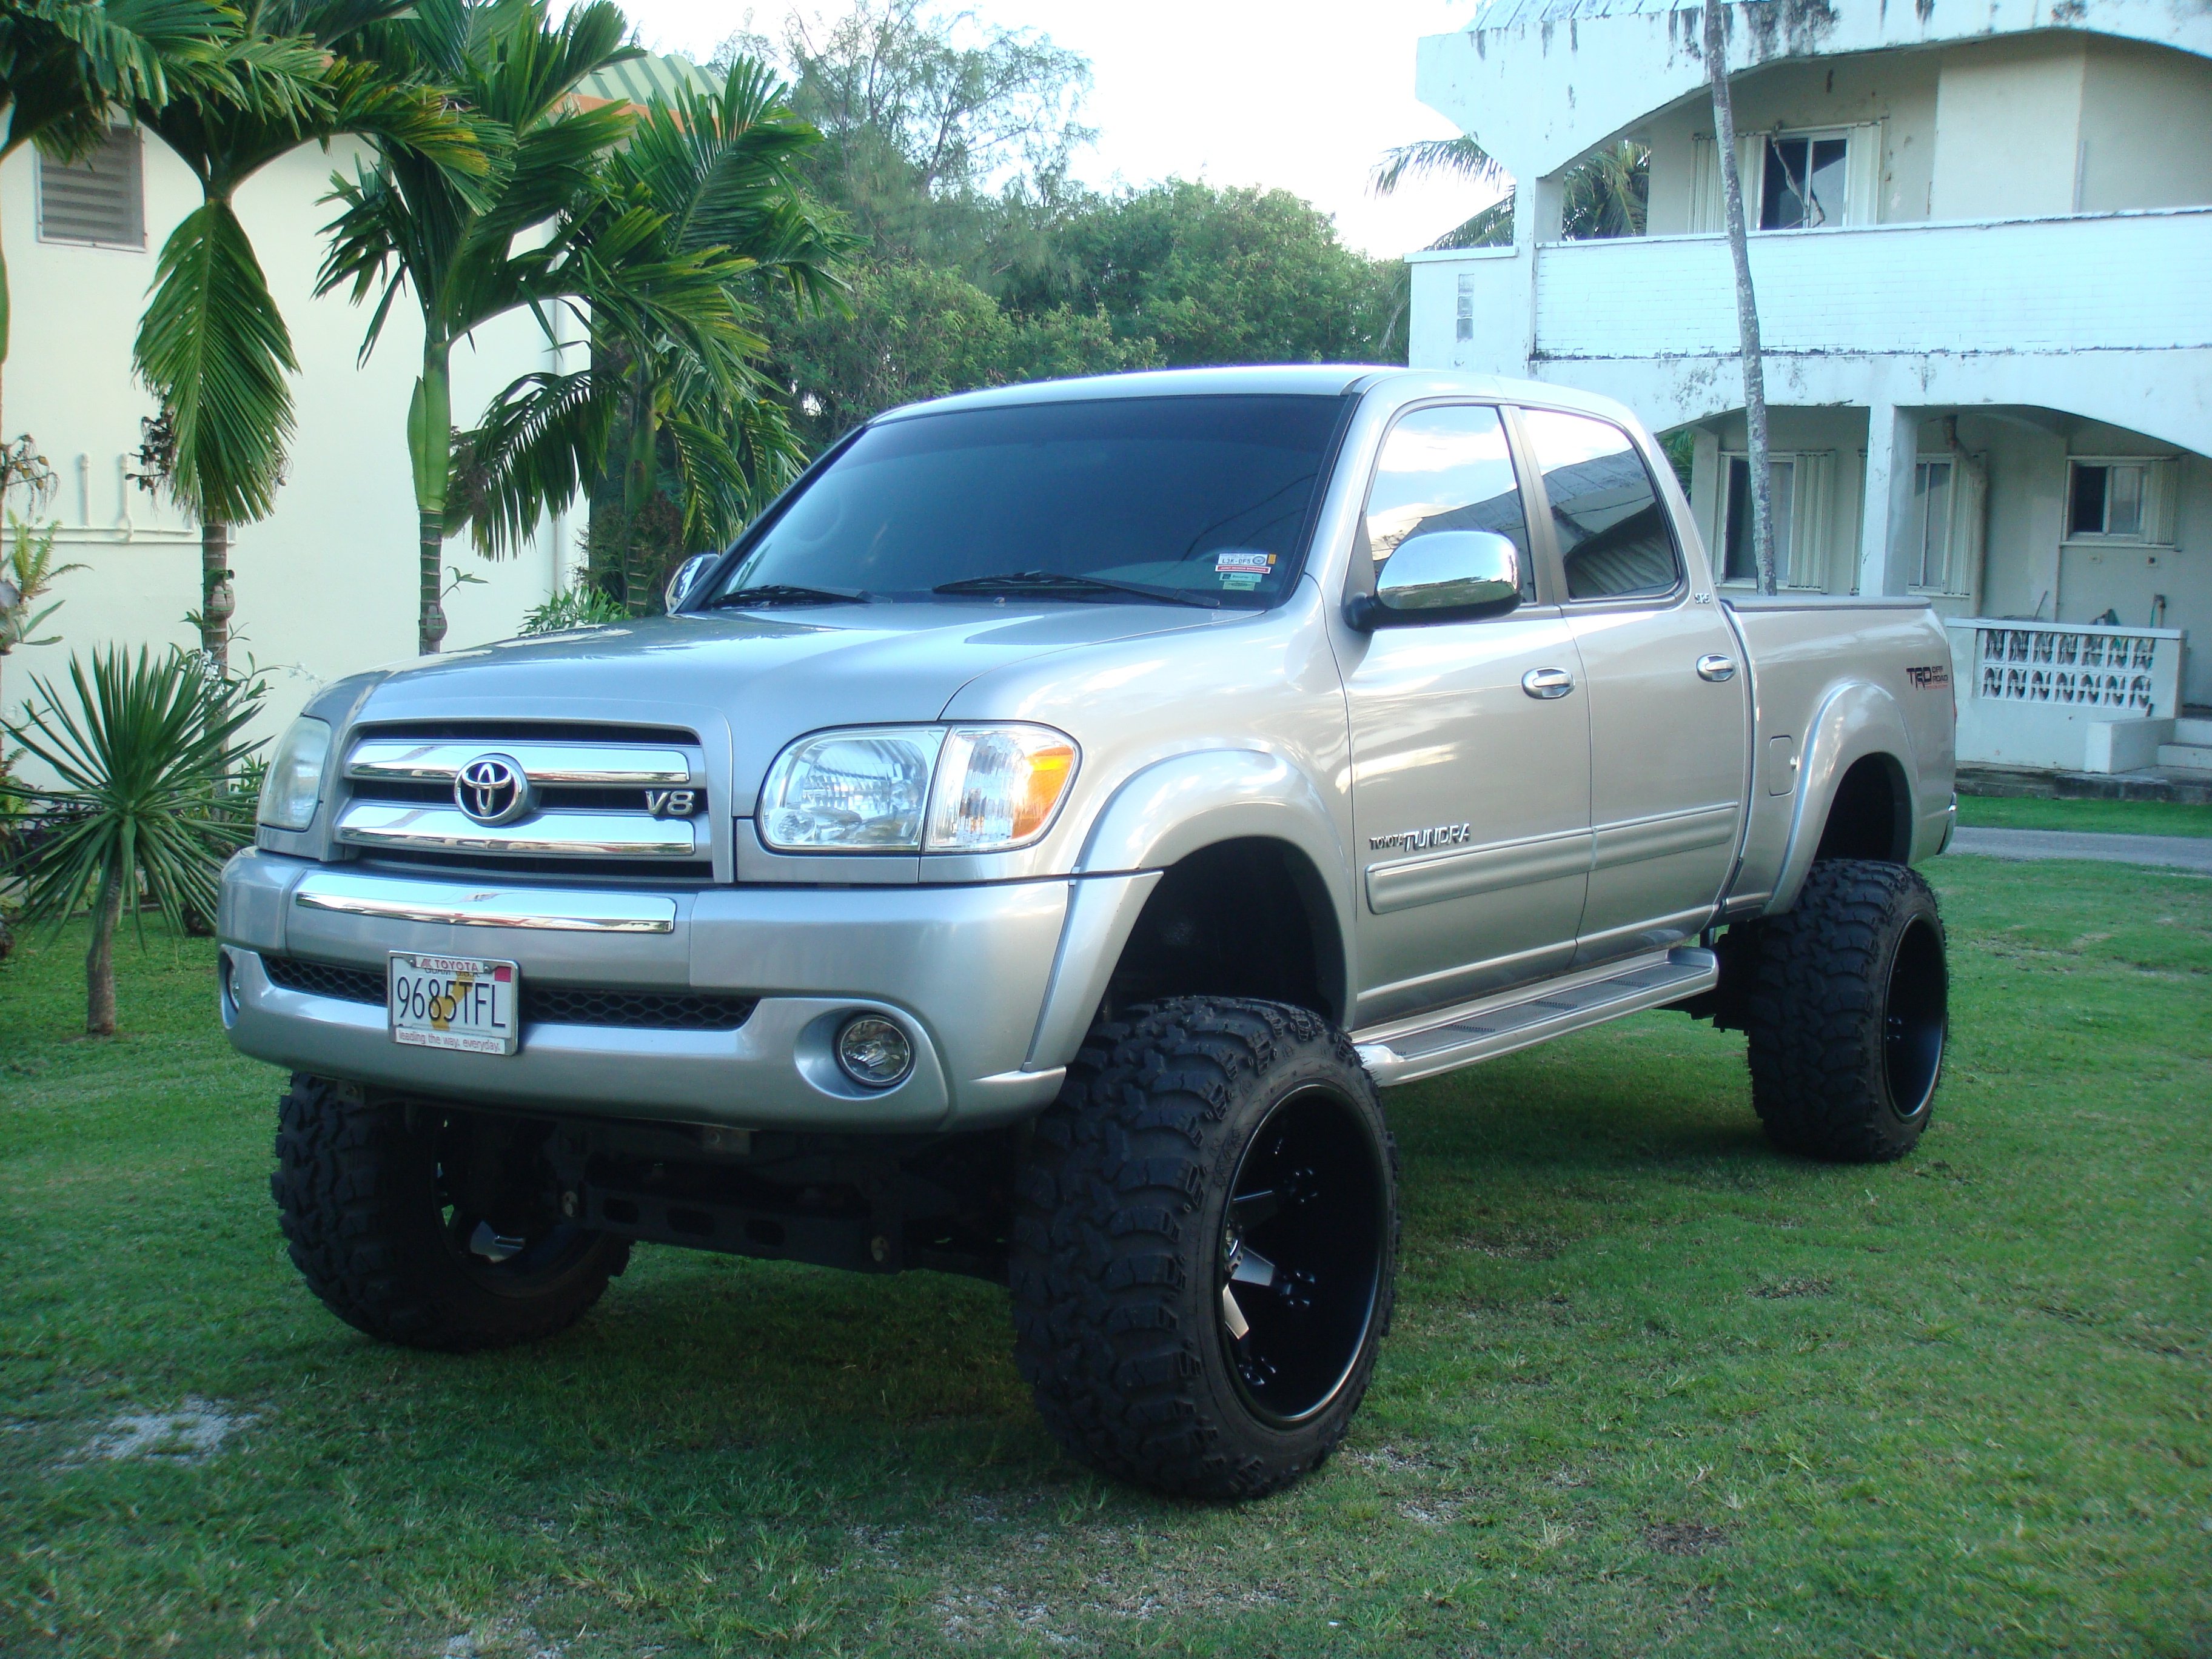 Tundra Double Cab >> toytundra671 2005 Toyota Tundra Double CabSR5 Pickup 4D 6 1/4 ft Specs, Photos, Modification ...